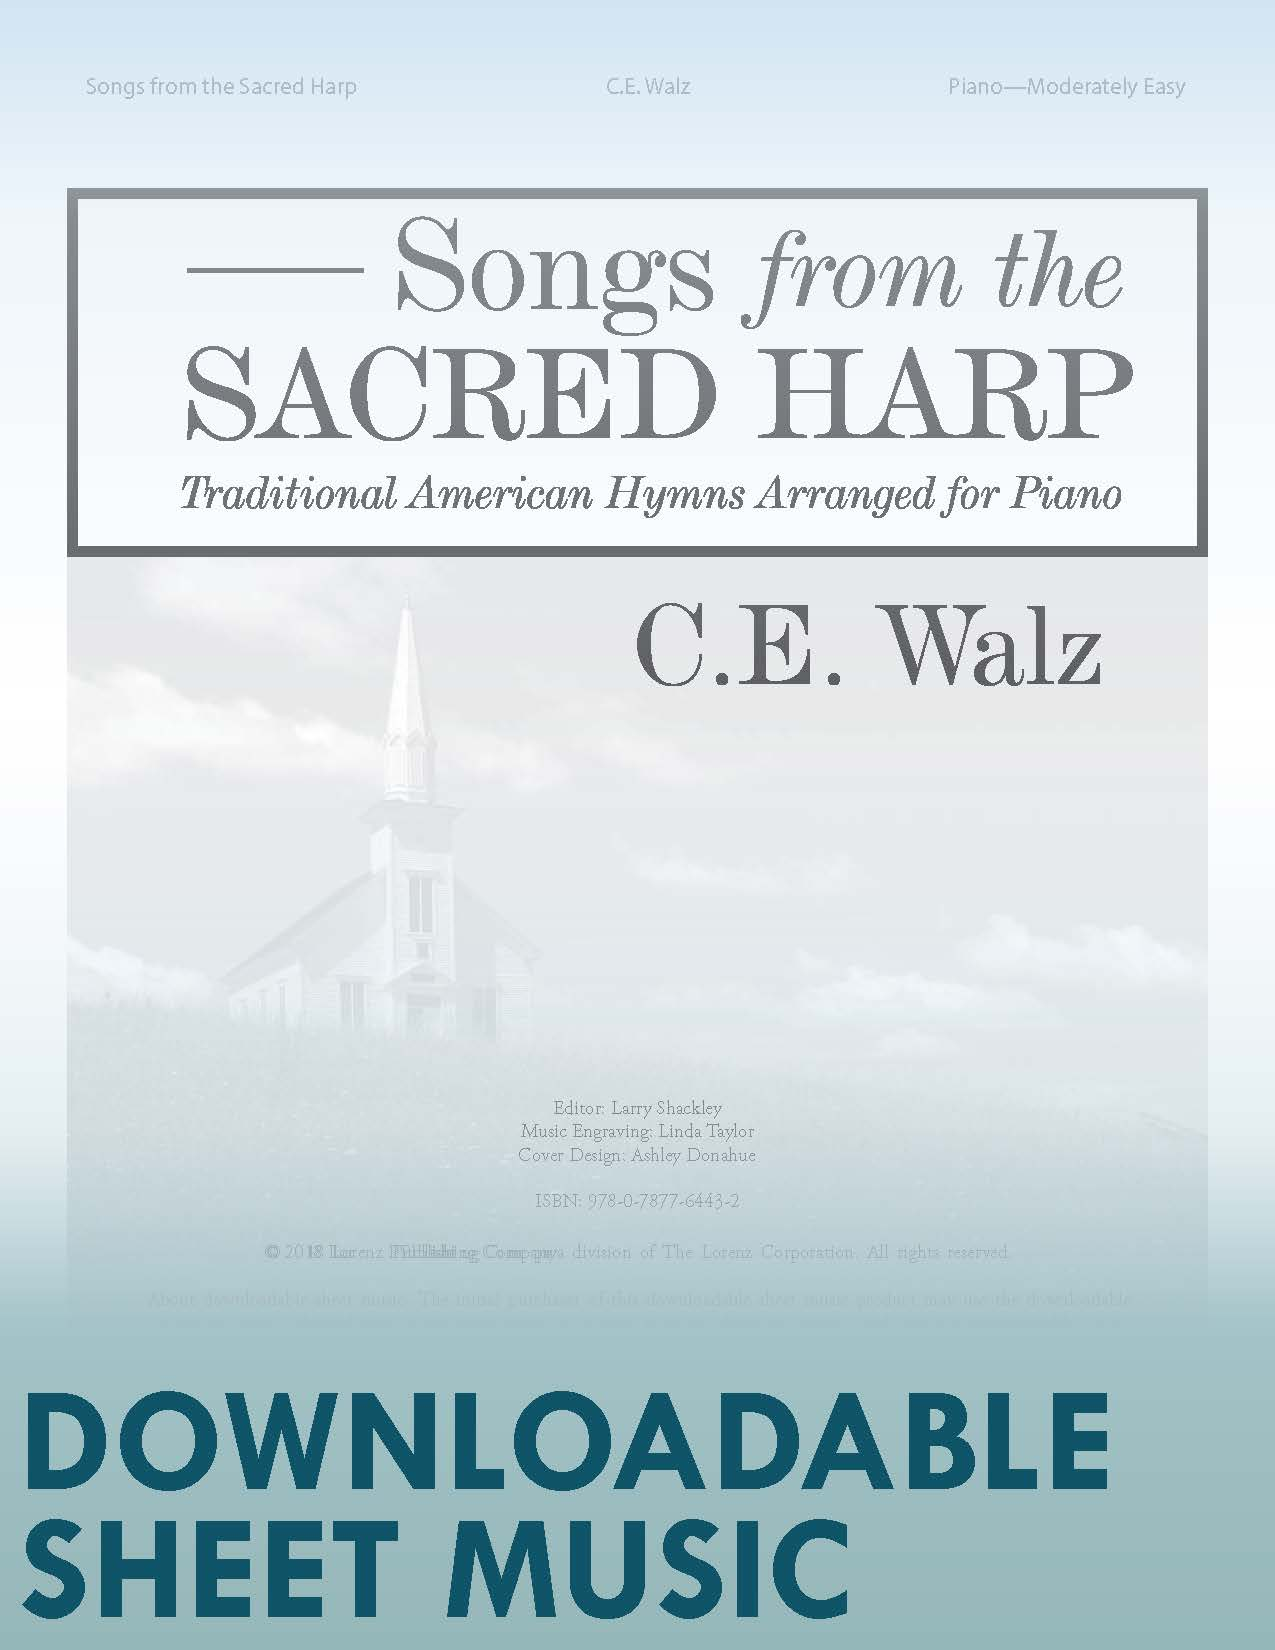 Songs from the Sacred Harp - Digital Download